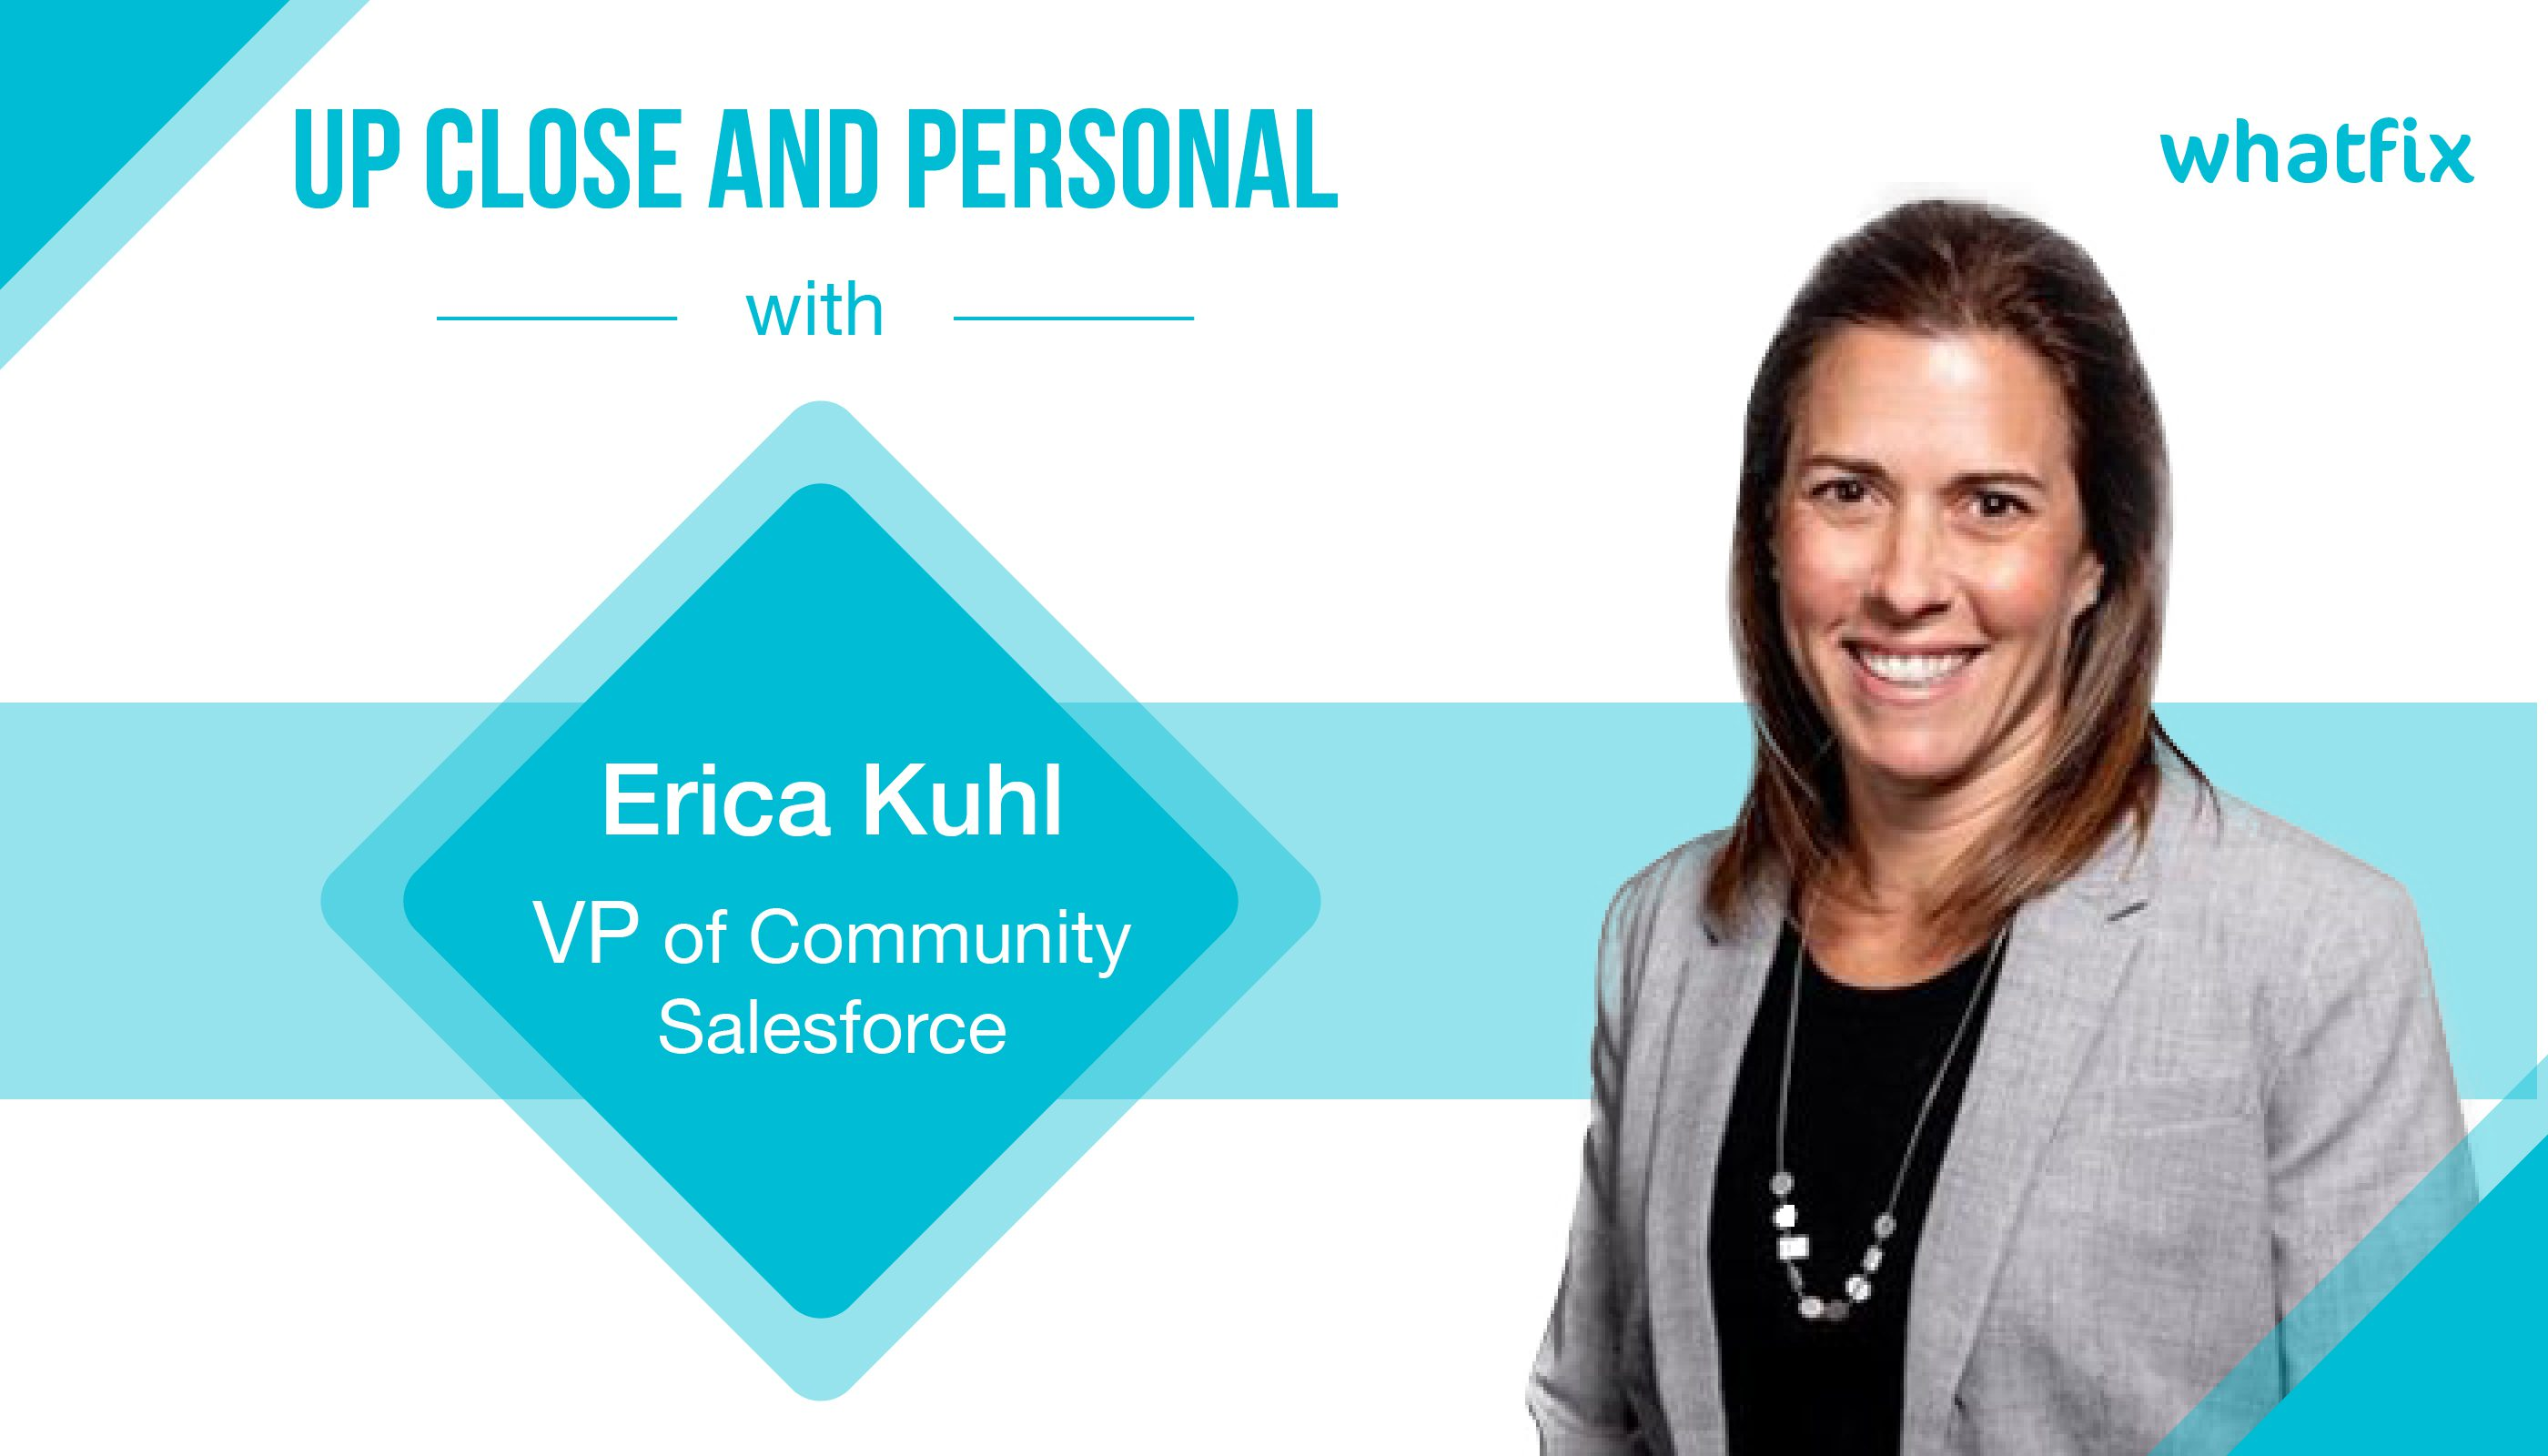 Up Close and Personal with Erica Kuhl, VP of Community, Salesforce